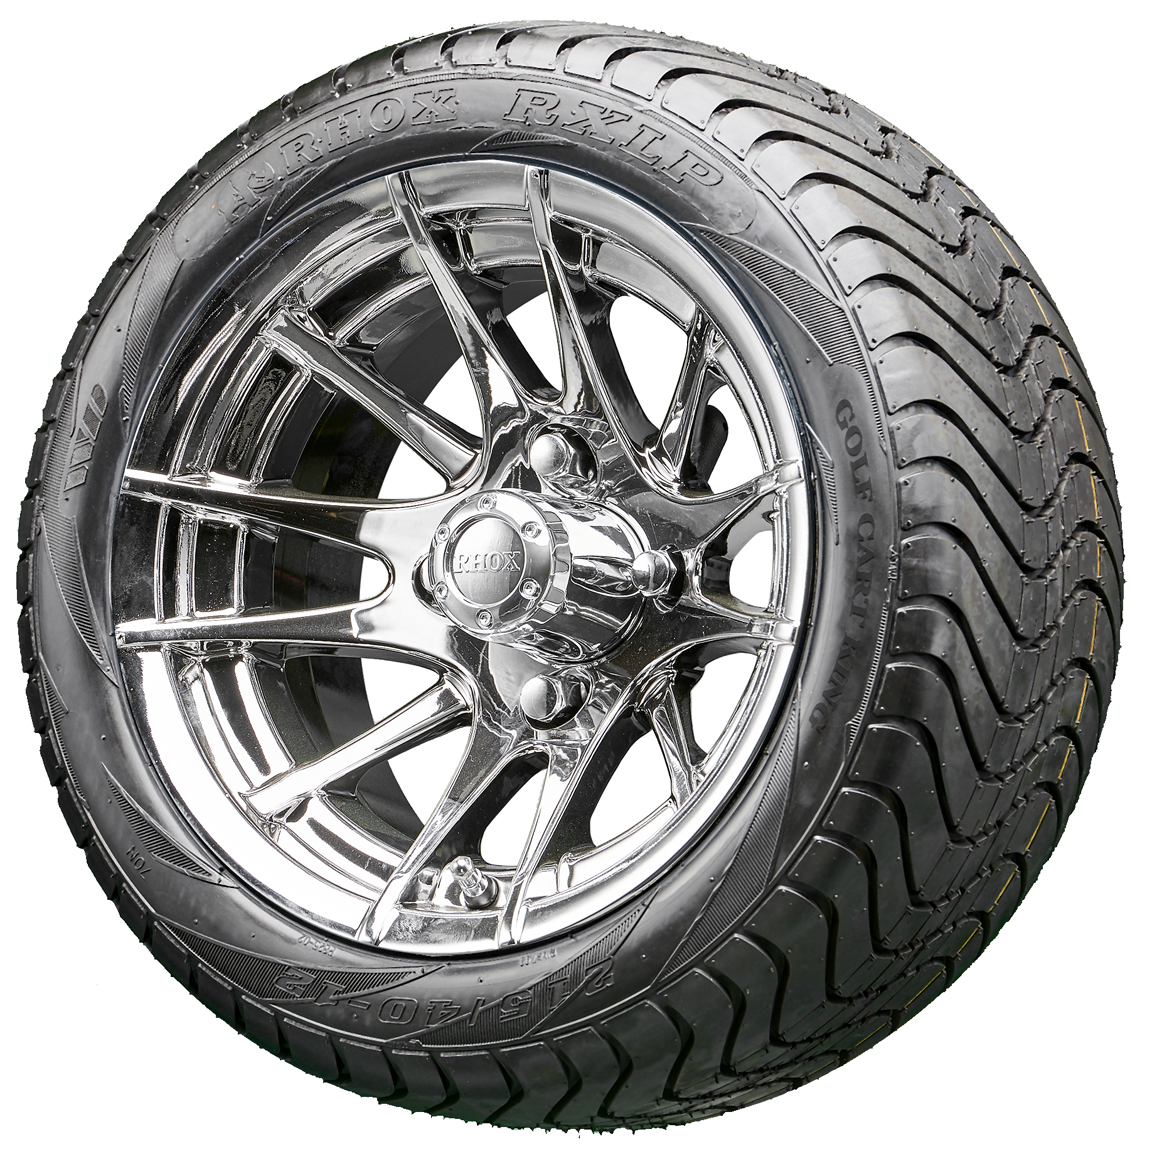 "RHOX 12"" RX102 Chrome Wheels and Low Pro Tires Combo ..."